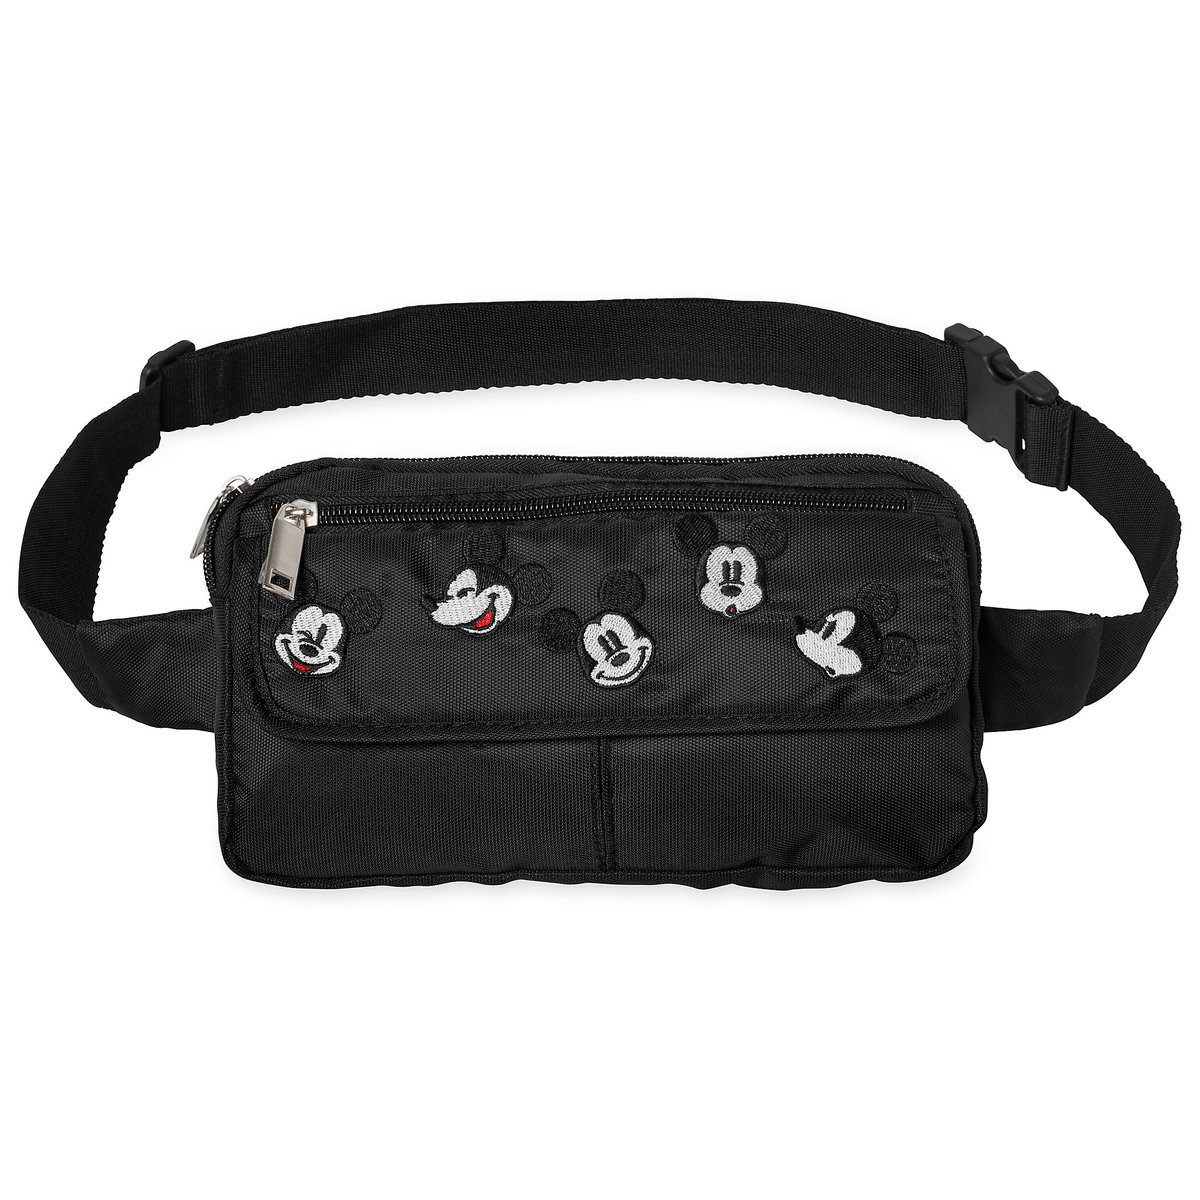 6c8e76cec Product Image of Mickey Mouse Hip Pack   1